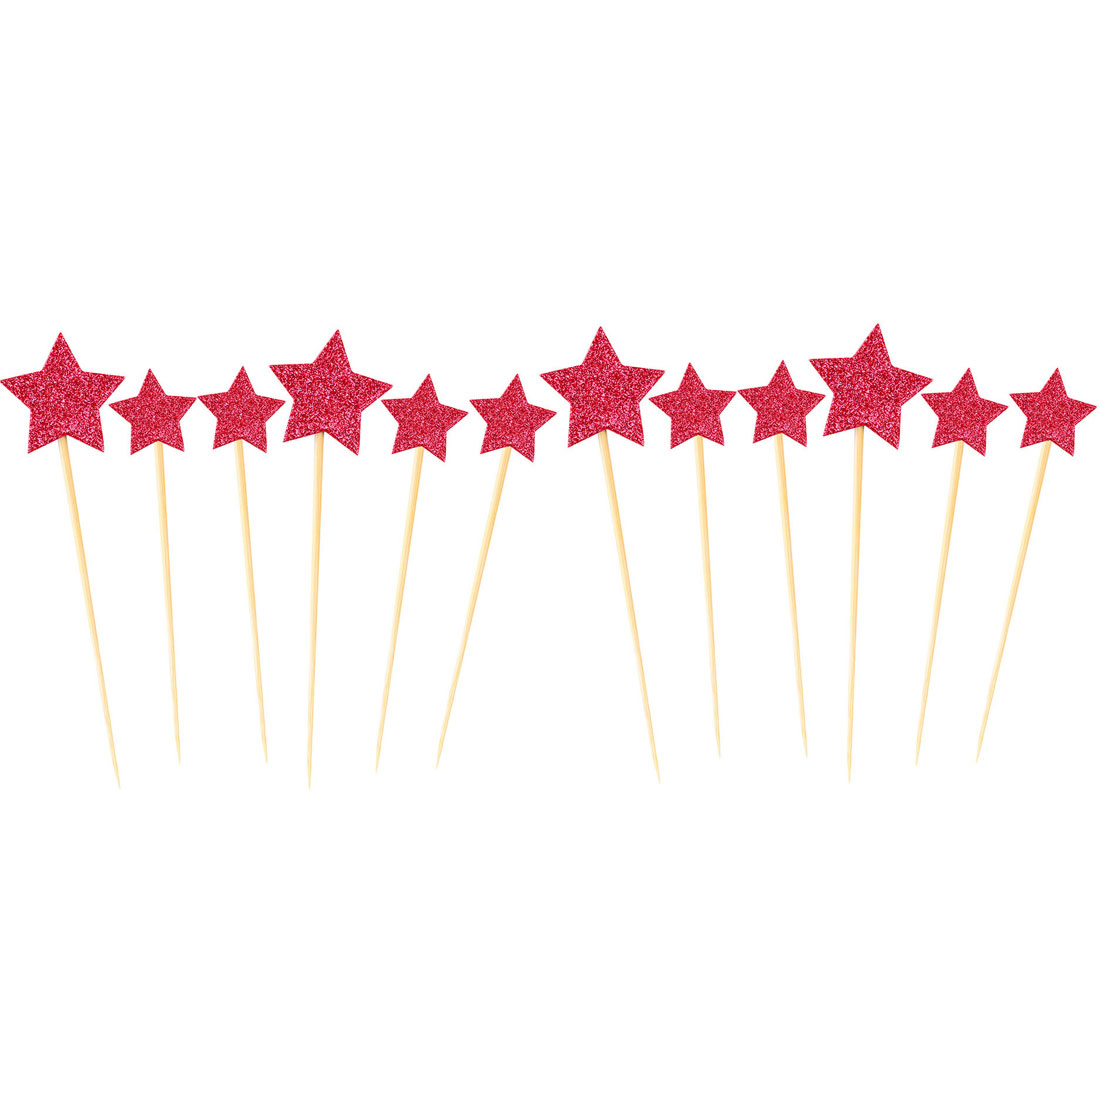 Home Party Cupcake Star Shaped DIY Glittery Toothpicks Picks Topper Red 12 in 1